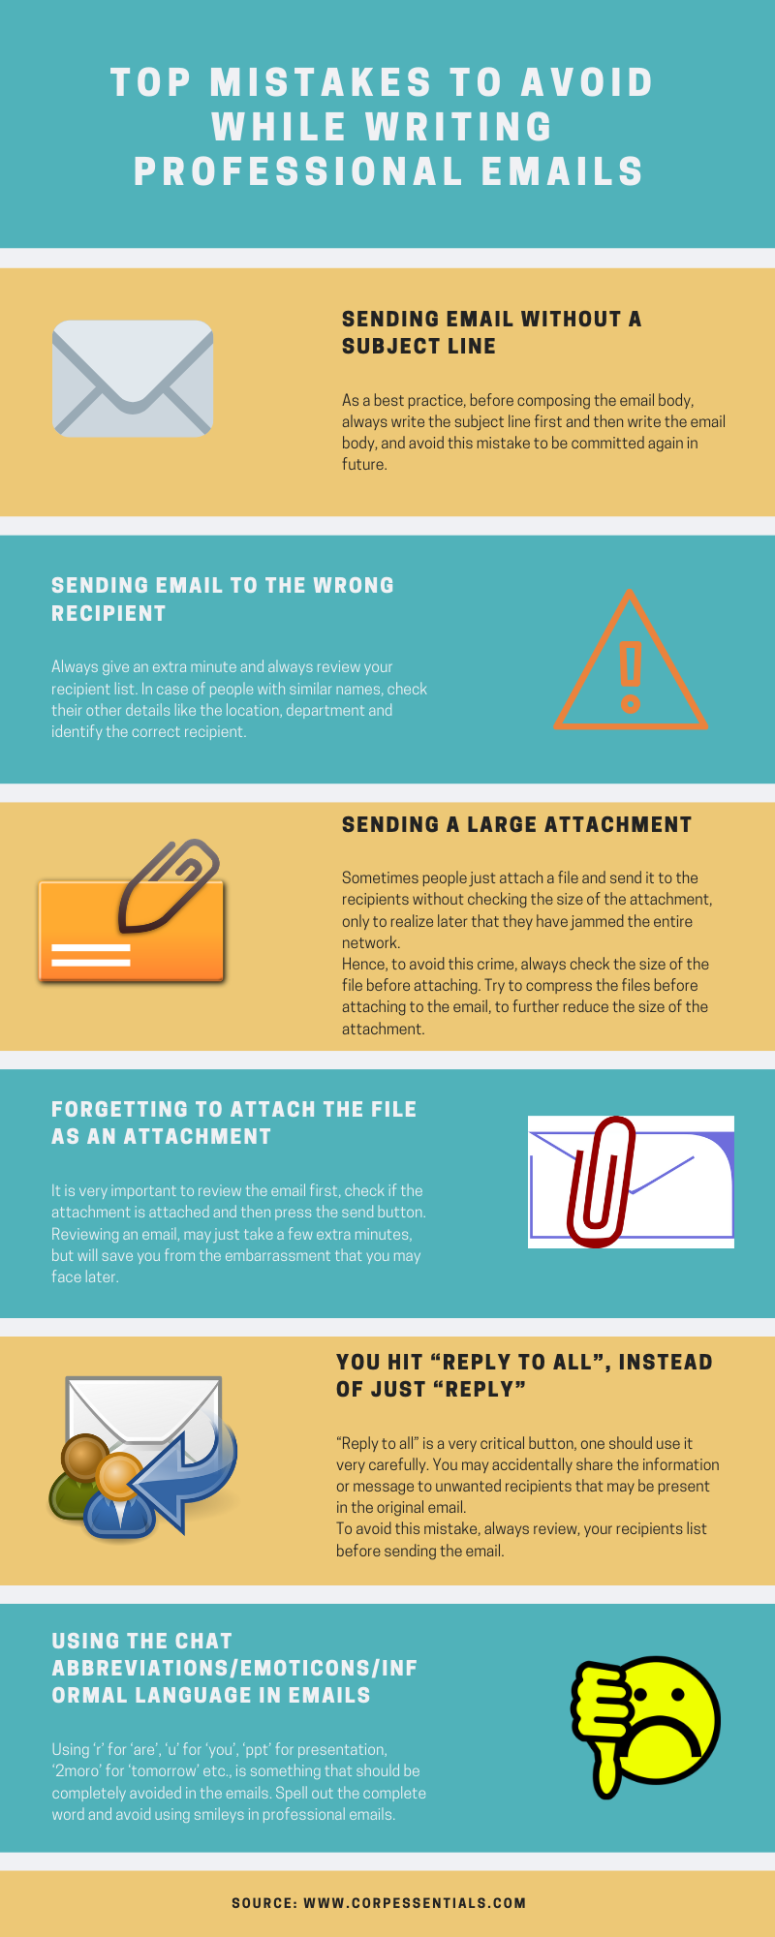 top email mistakes to avoid.png